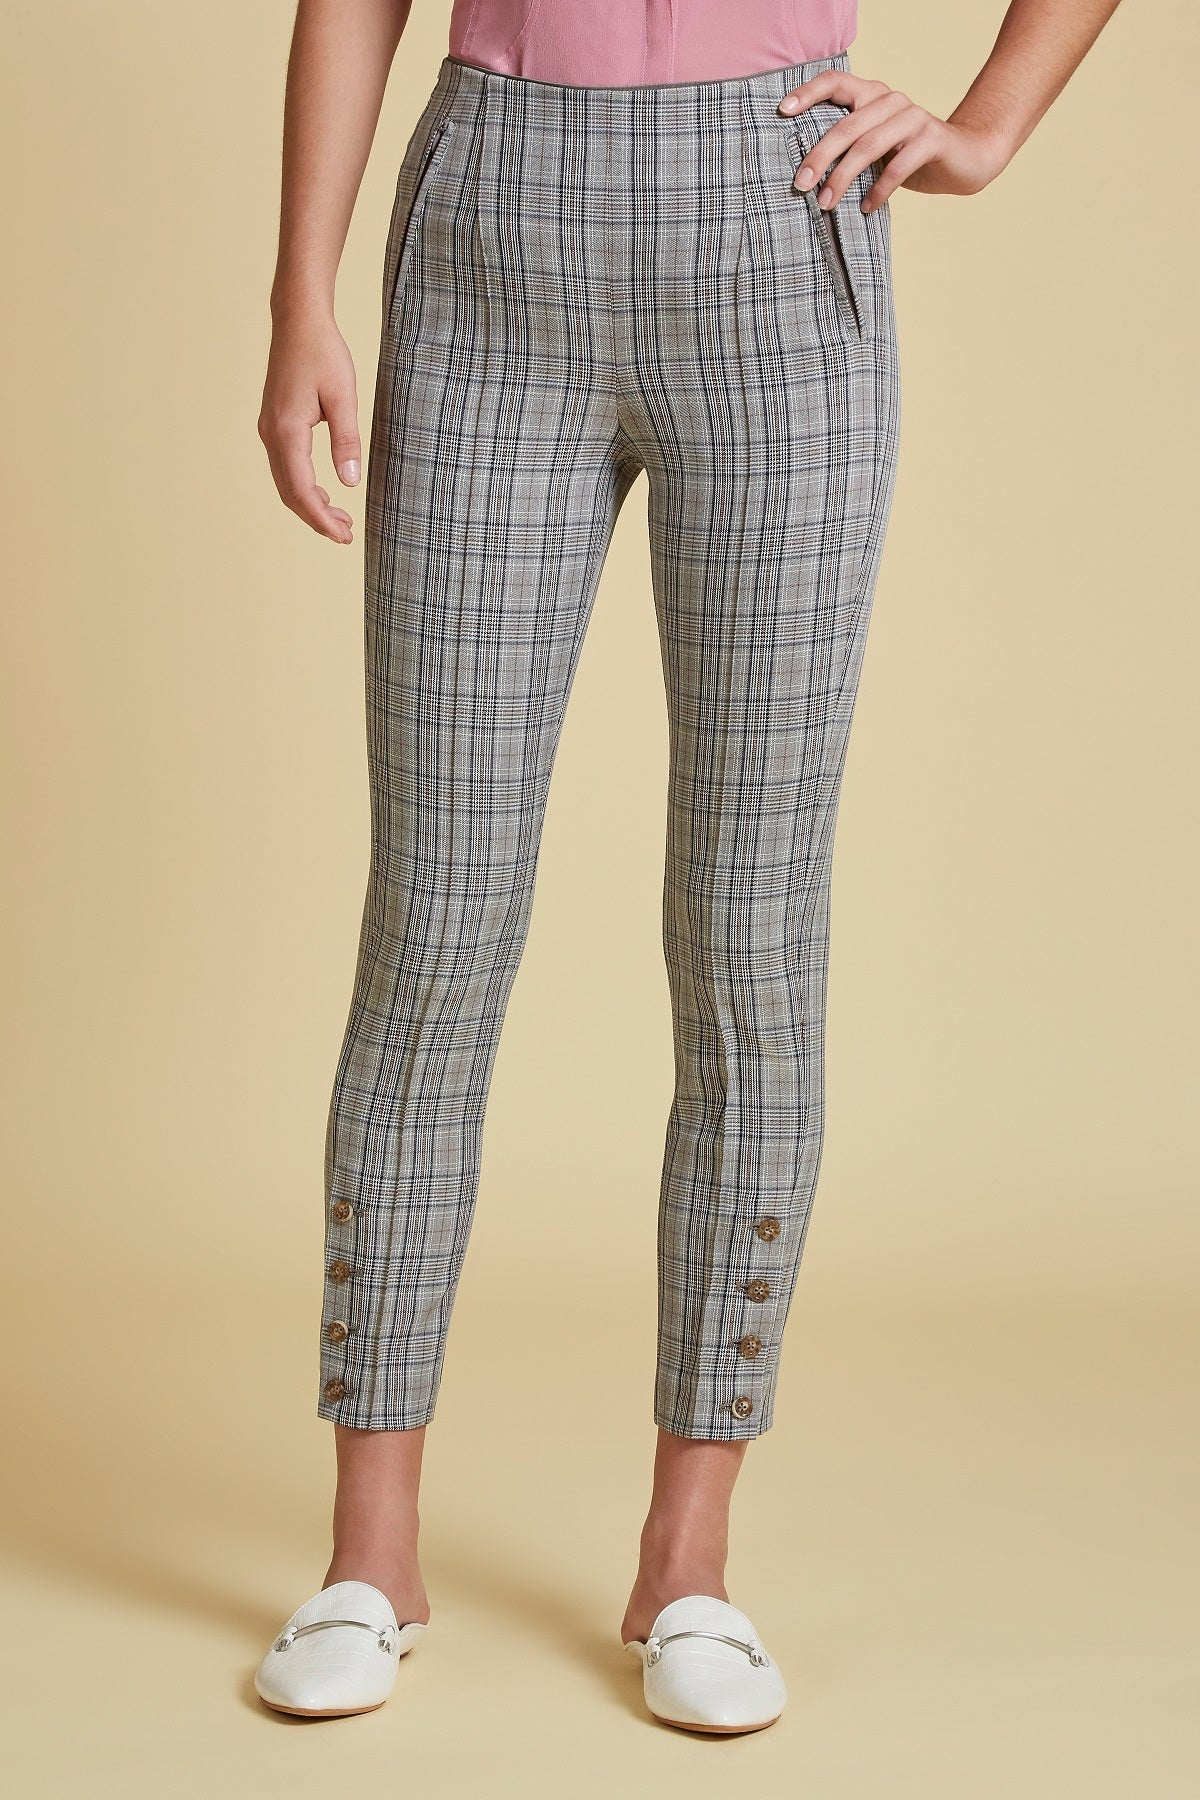 Aloe Plaid Tailored Stretch Pant (4185463062603)